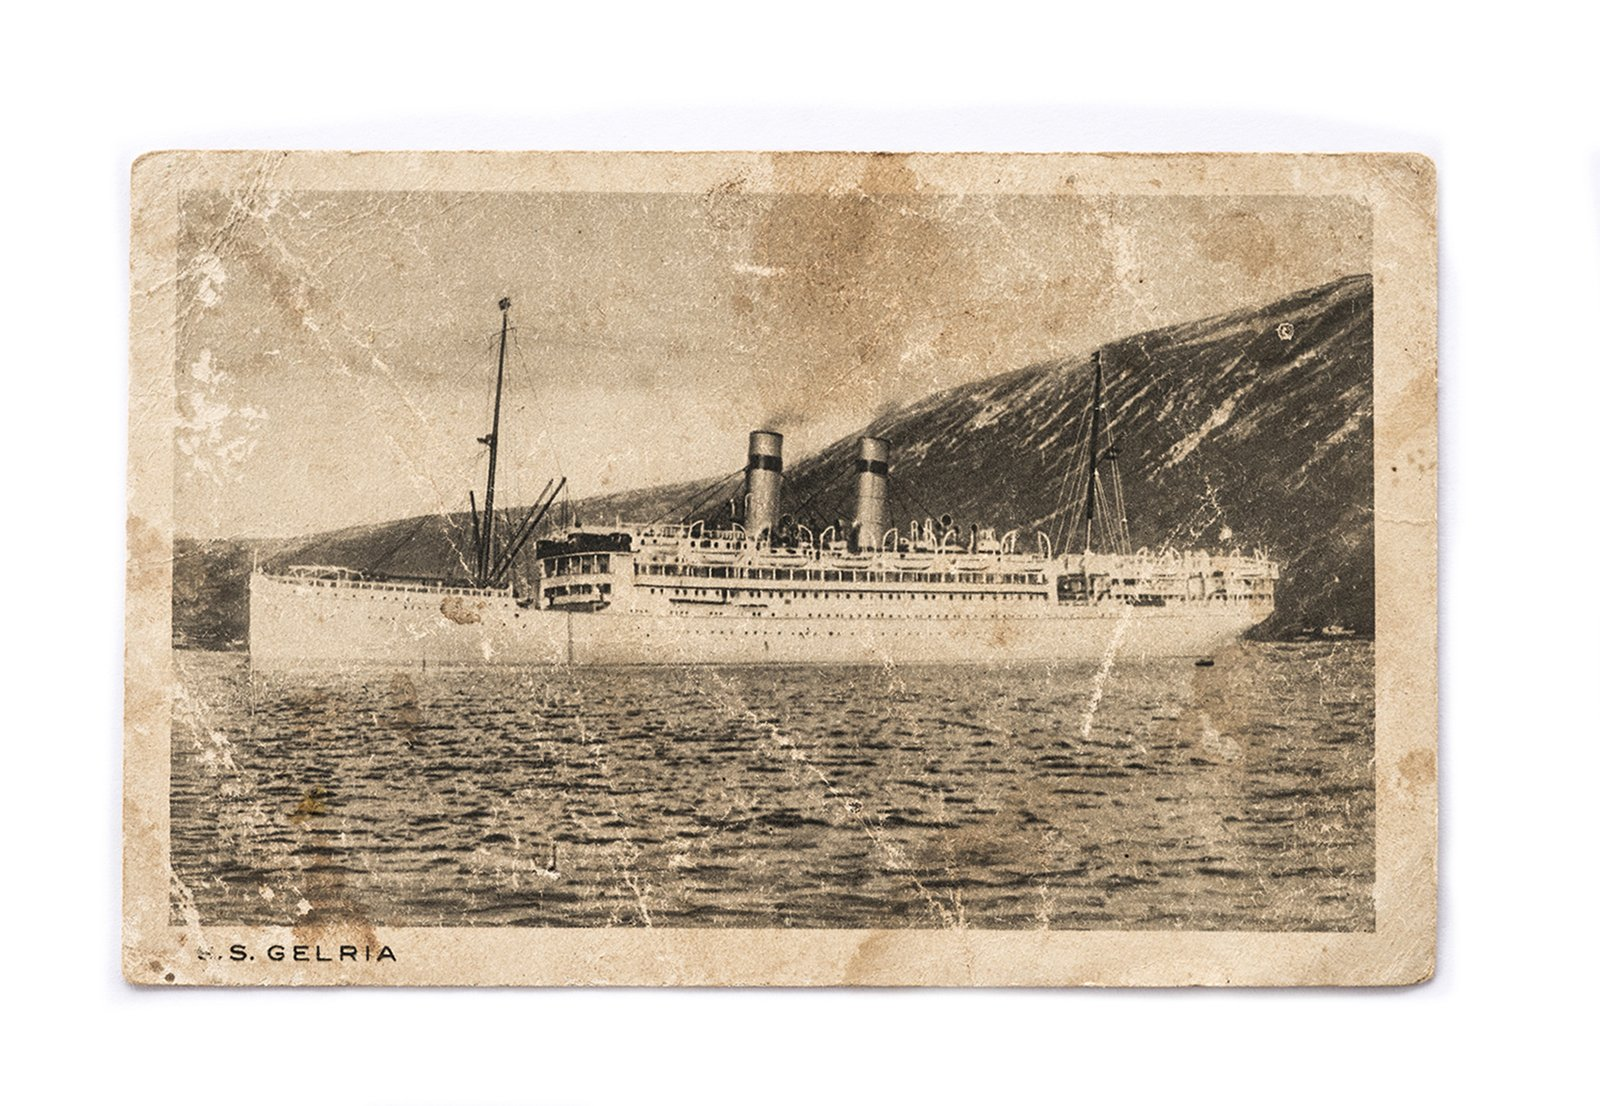 "The ship ""S.S Gelria"" which was offering emigration voyages from Amsterdam to Buenos Aires from 1913. As there was no passenger port in Poland at this time, lot of emigrants were living among other places through Amsterdam. 